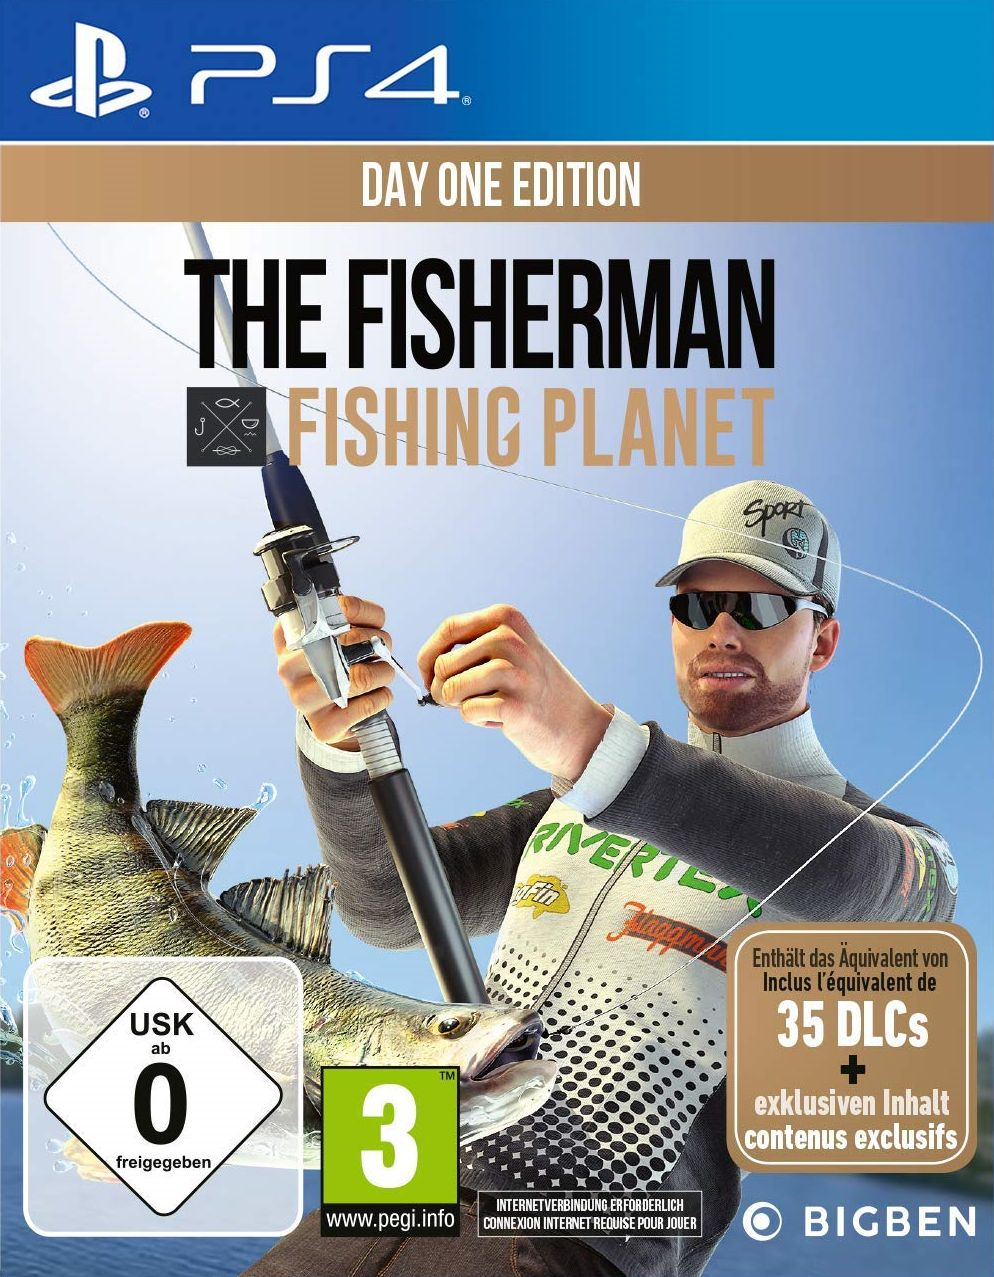 The Fisherman: Fishing Planet - DayOne Edition